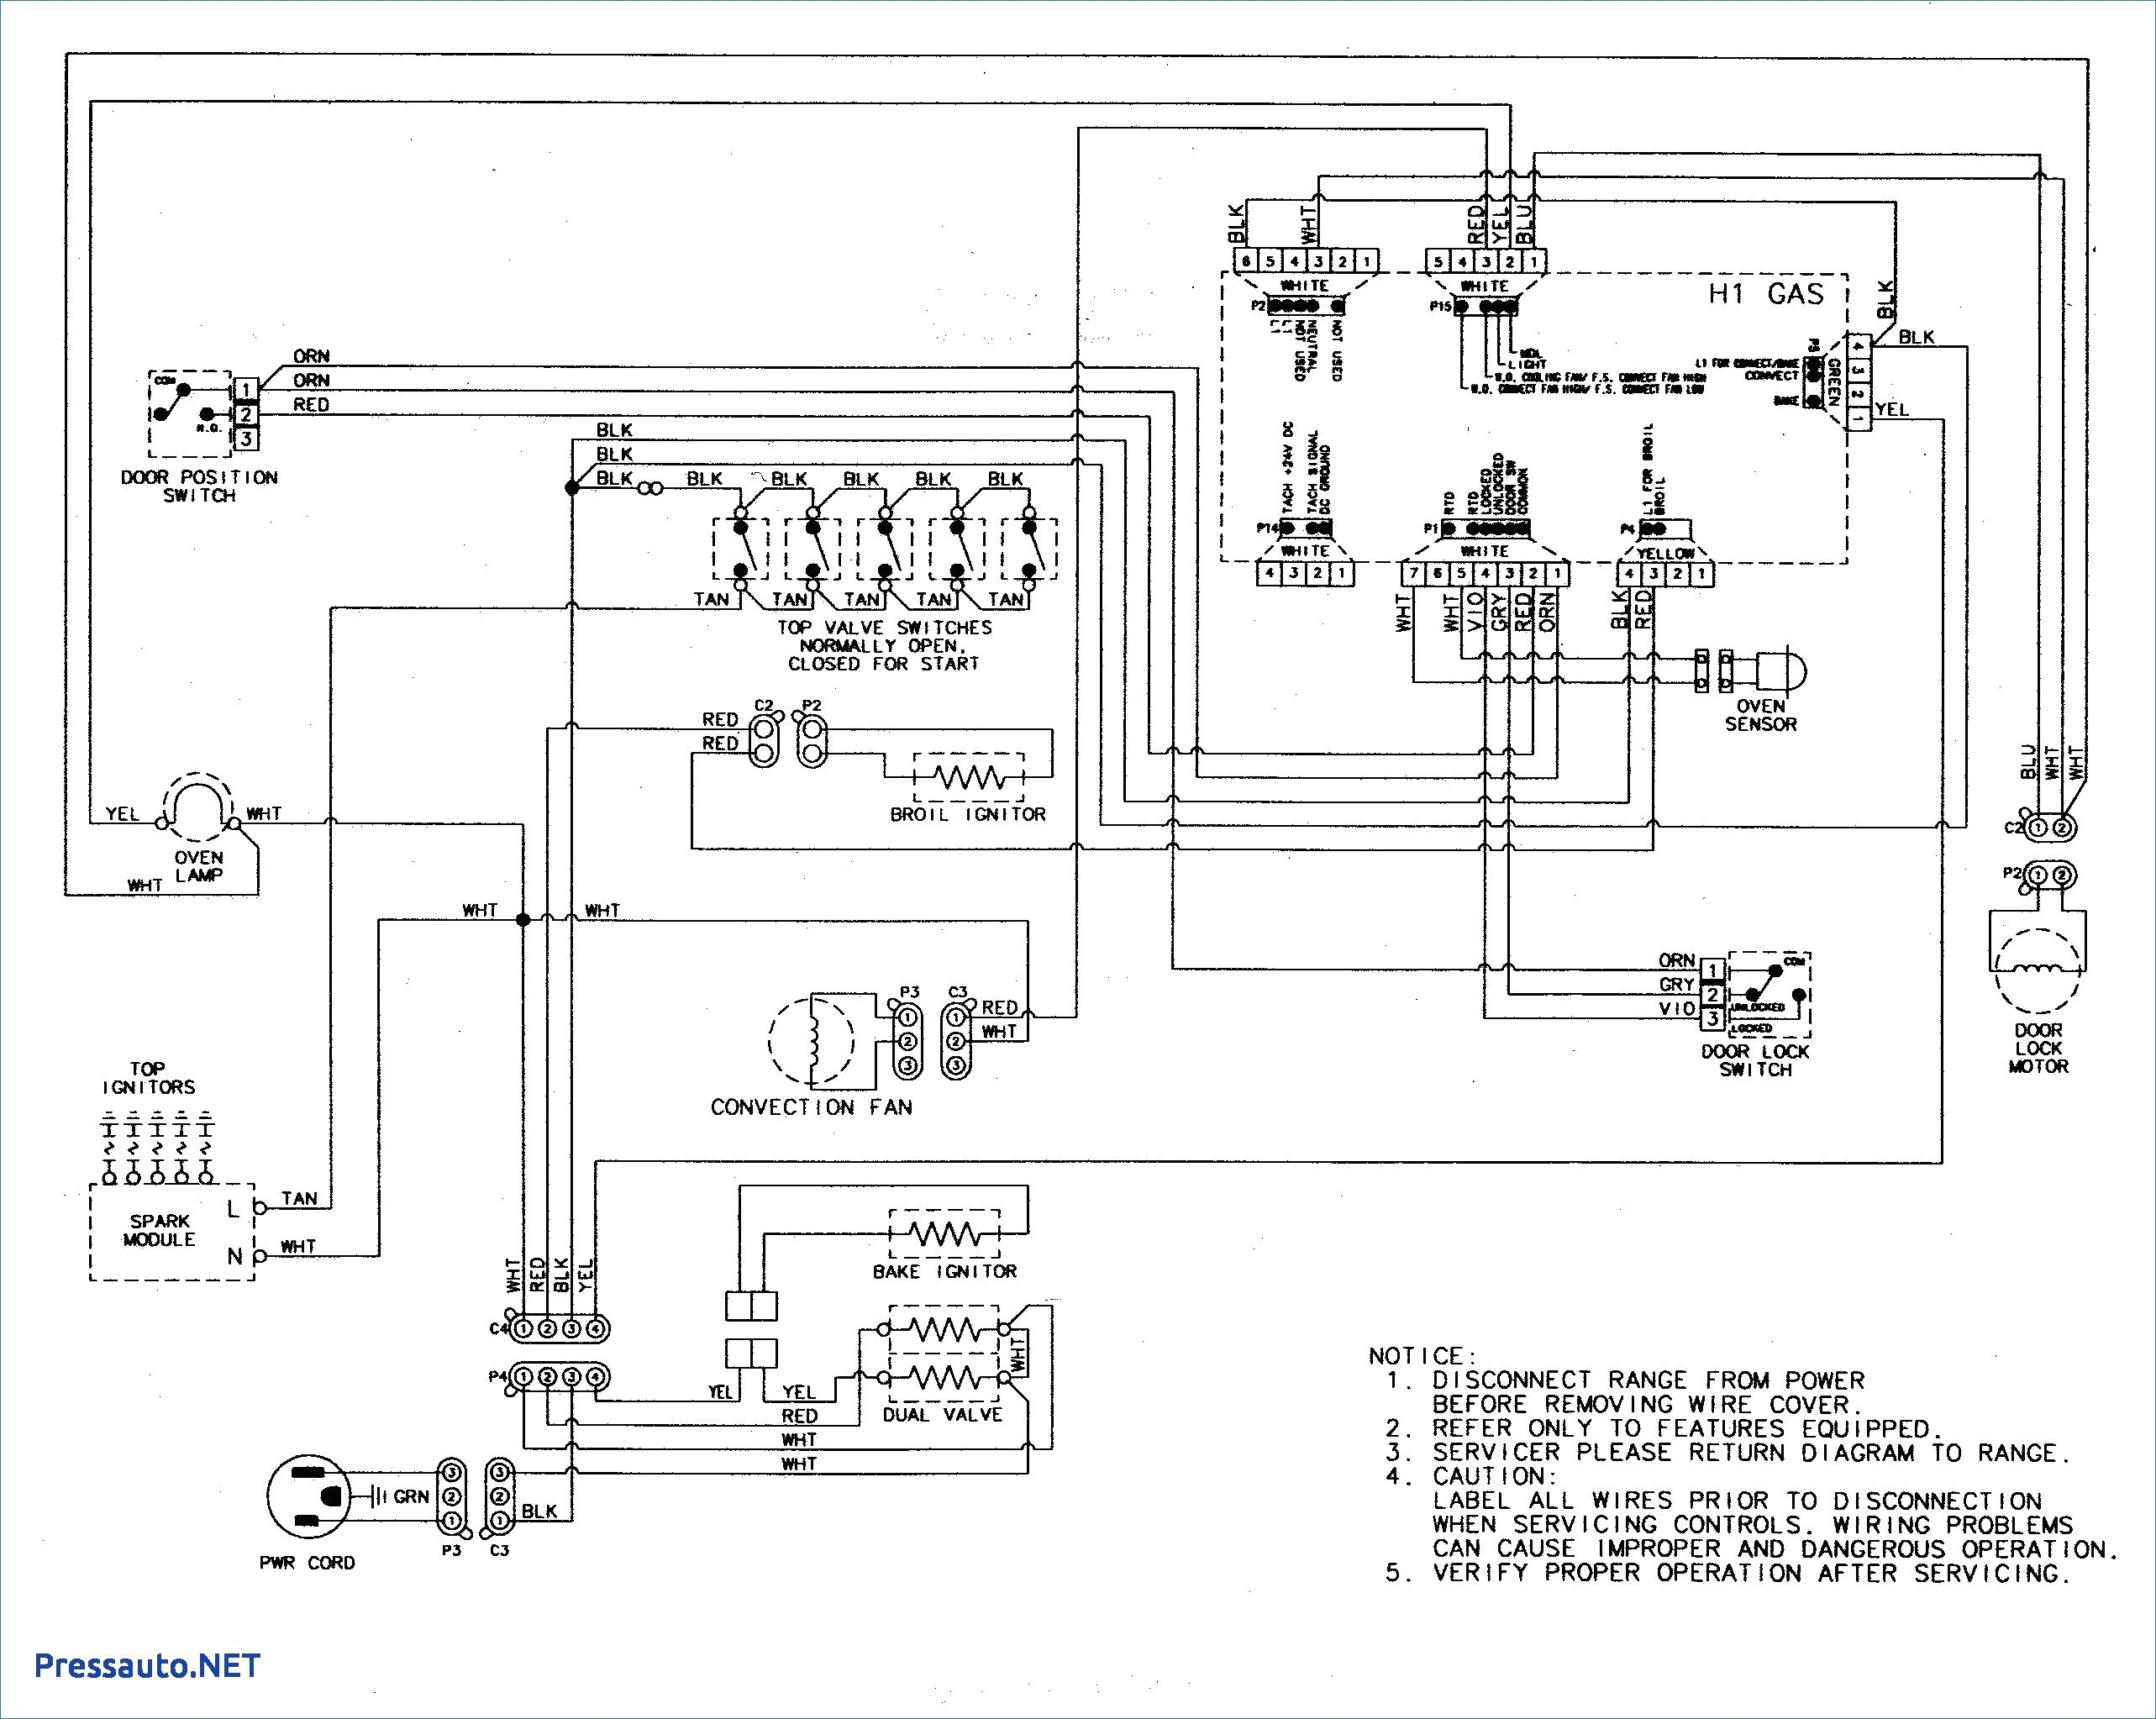 Panasonic Wiring Harness Diagram Diagrams Darren Criss ... on